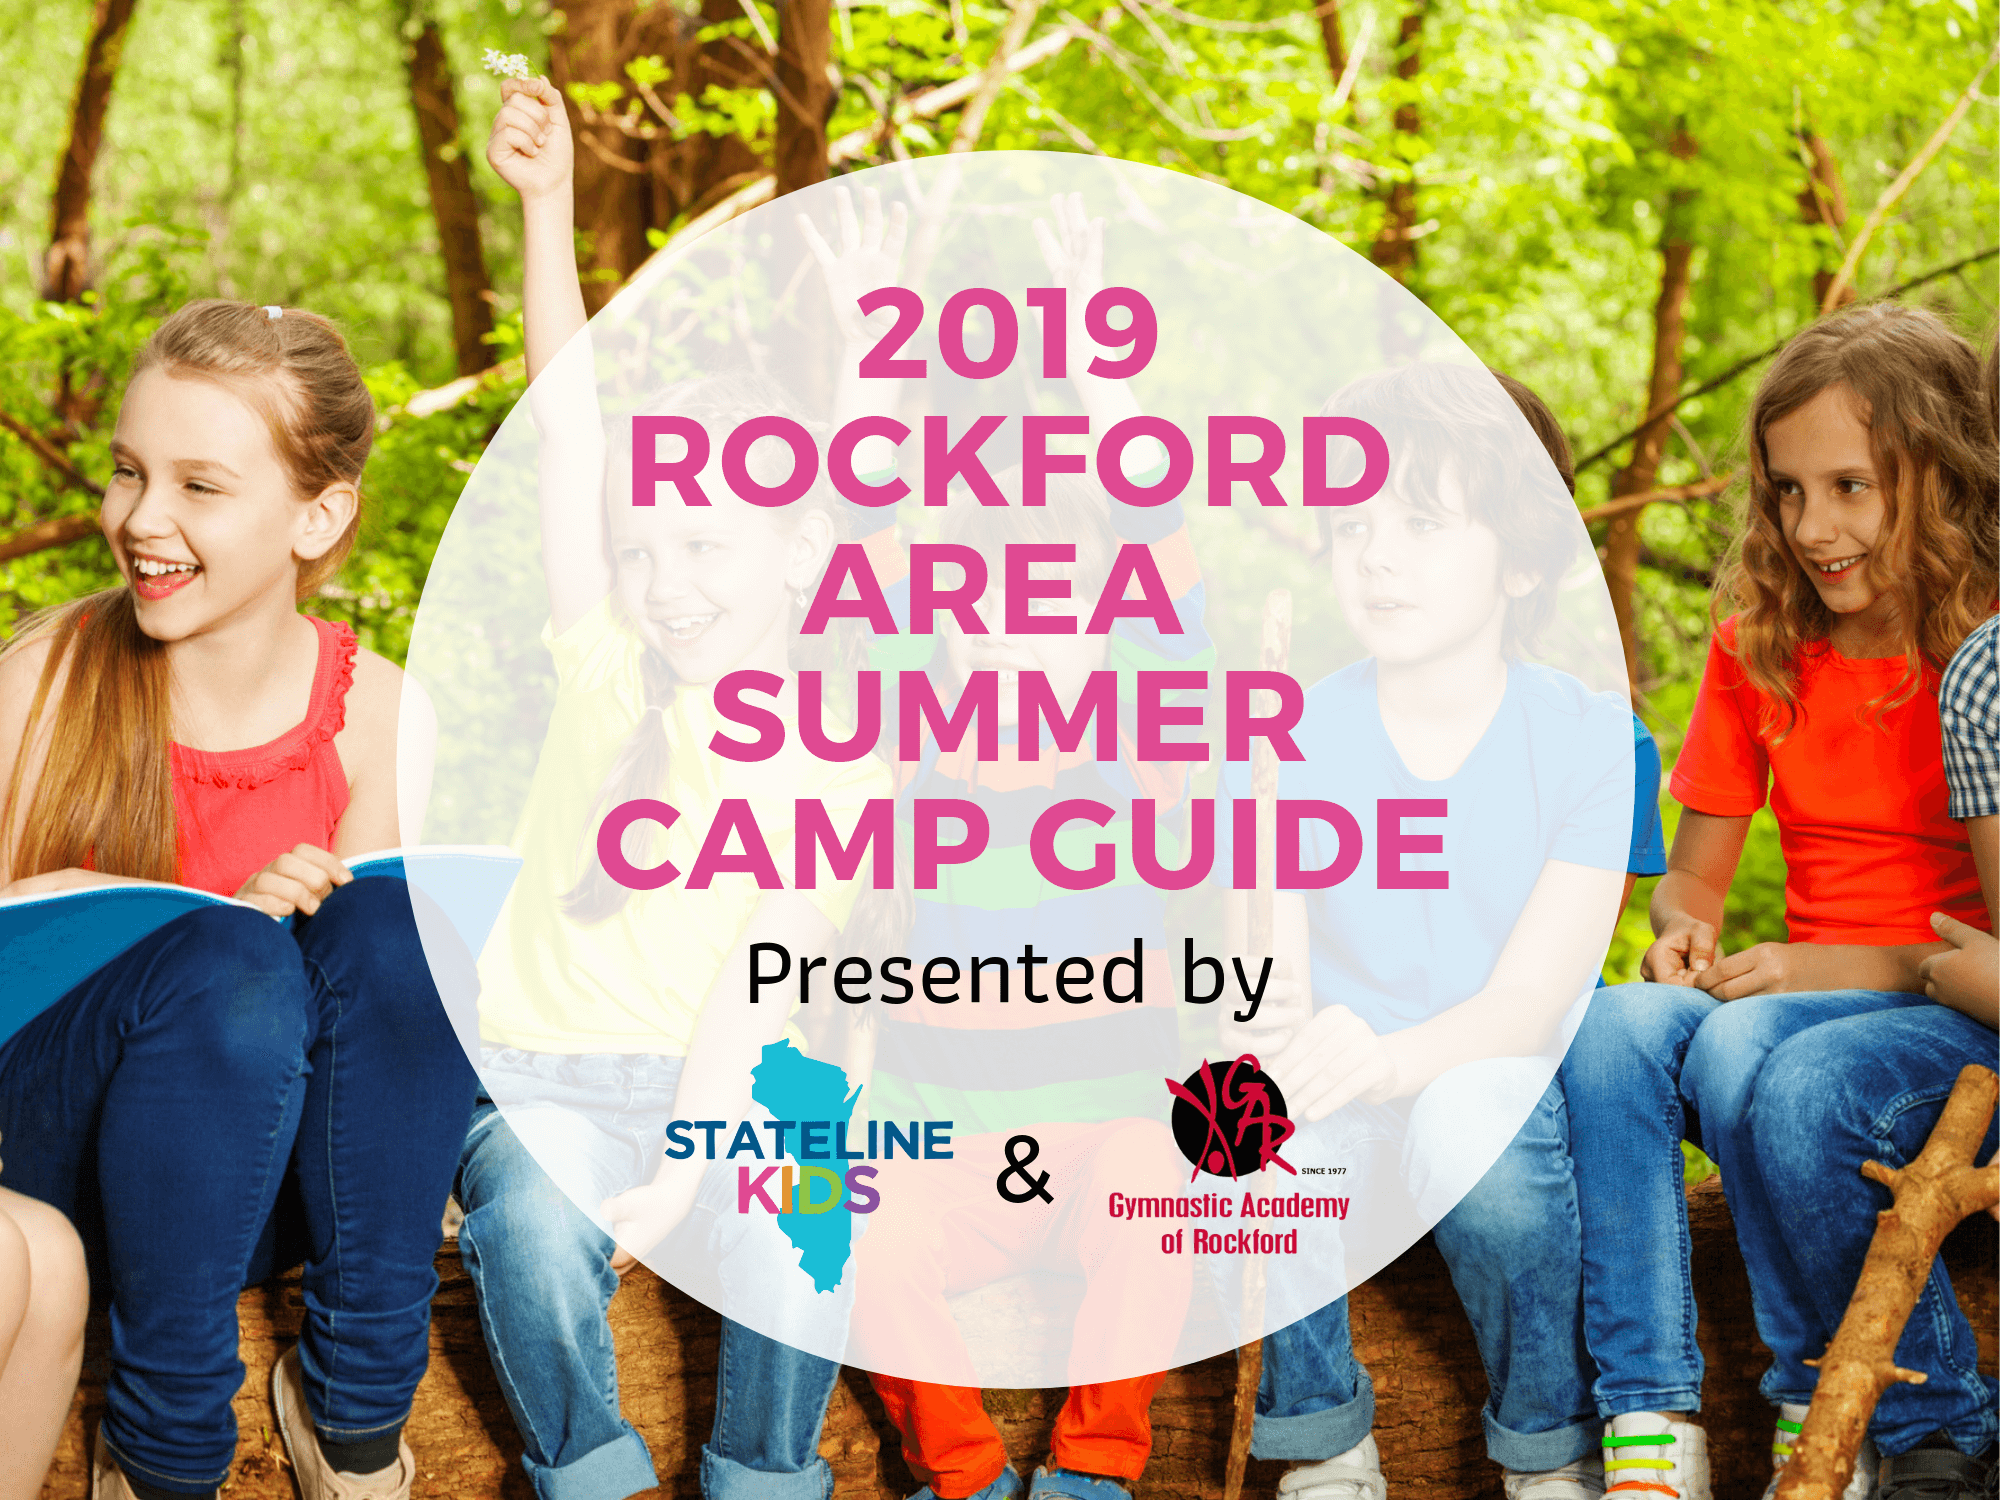 2019 Rockford Area Summer Camp